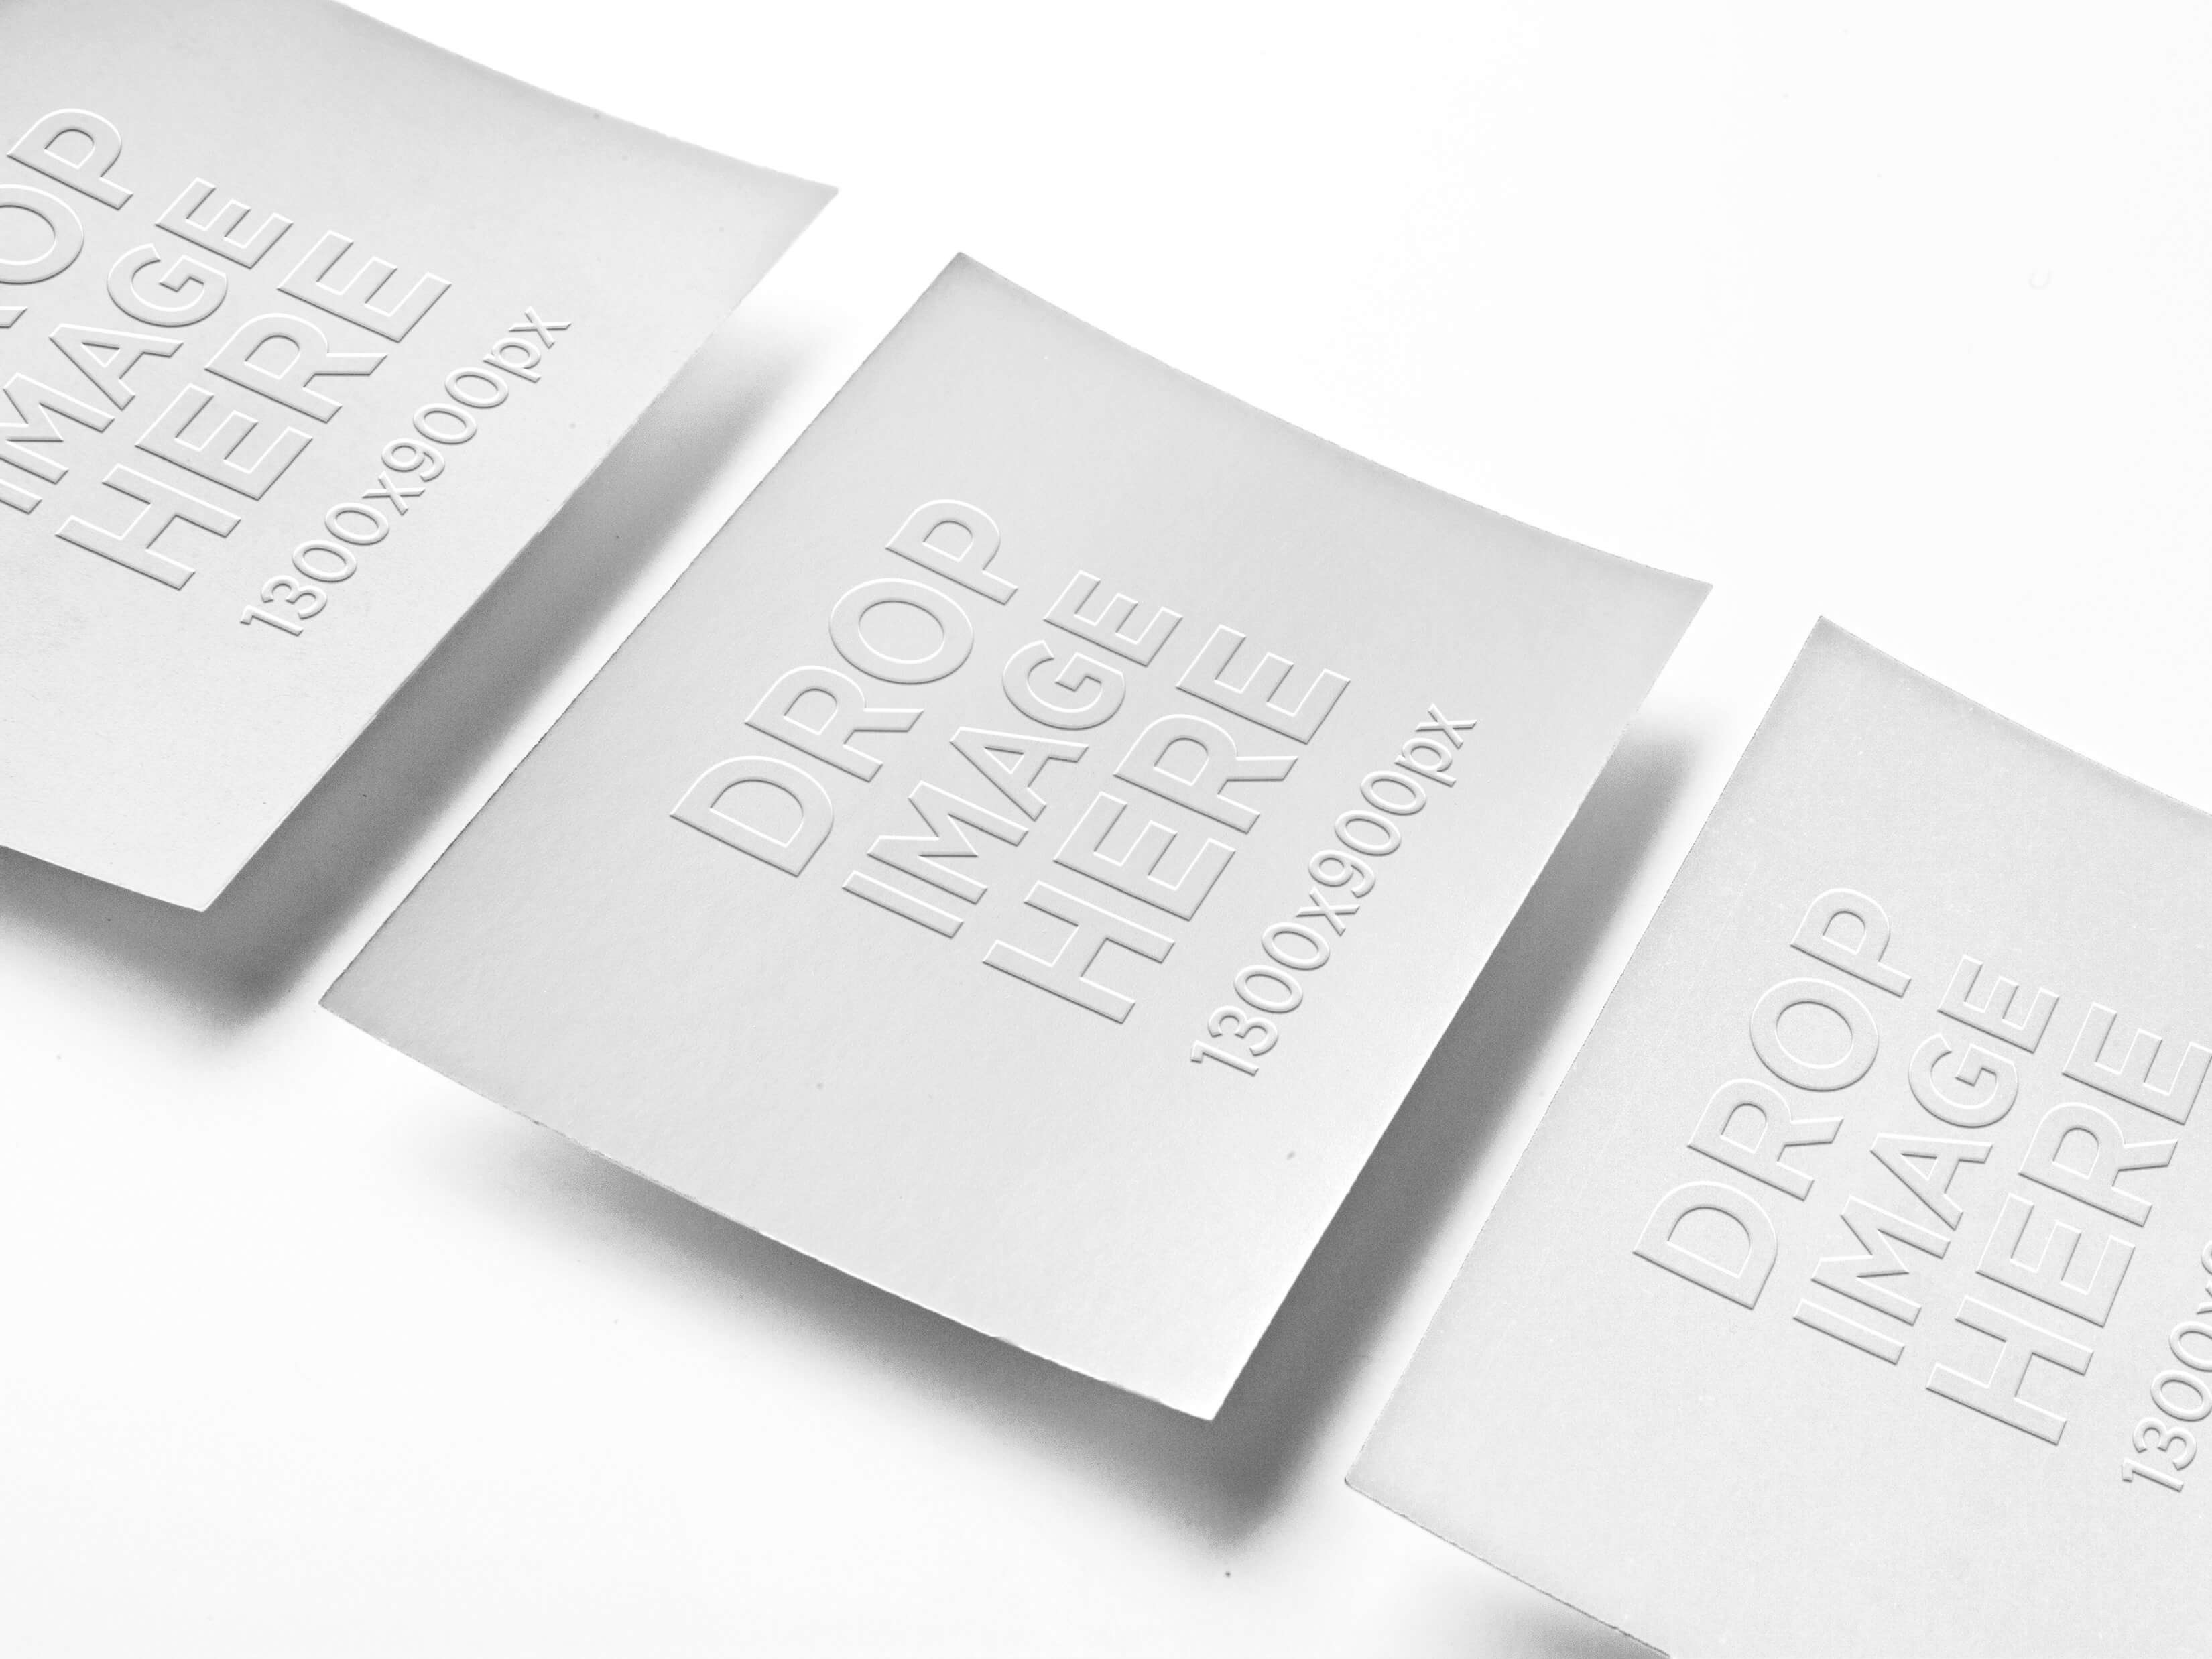 MOCKUP OF 3 BUSINESS CARDS LYING OVER A SMOOTH BACKGROUND